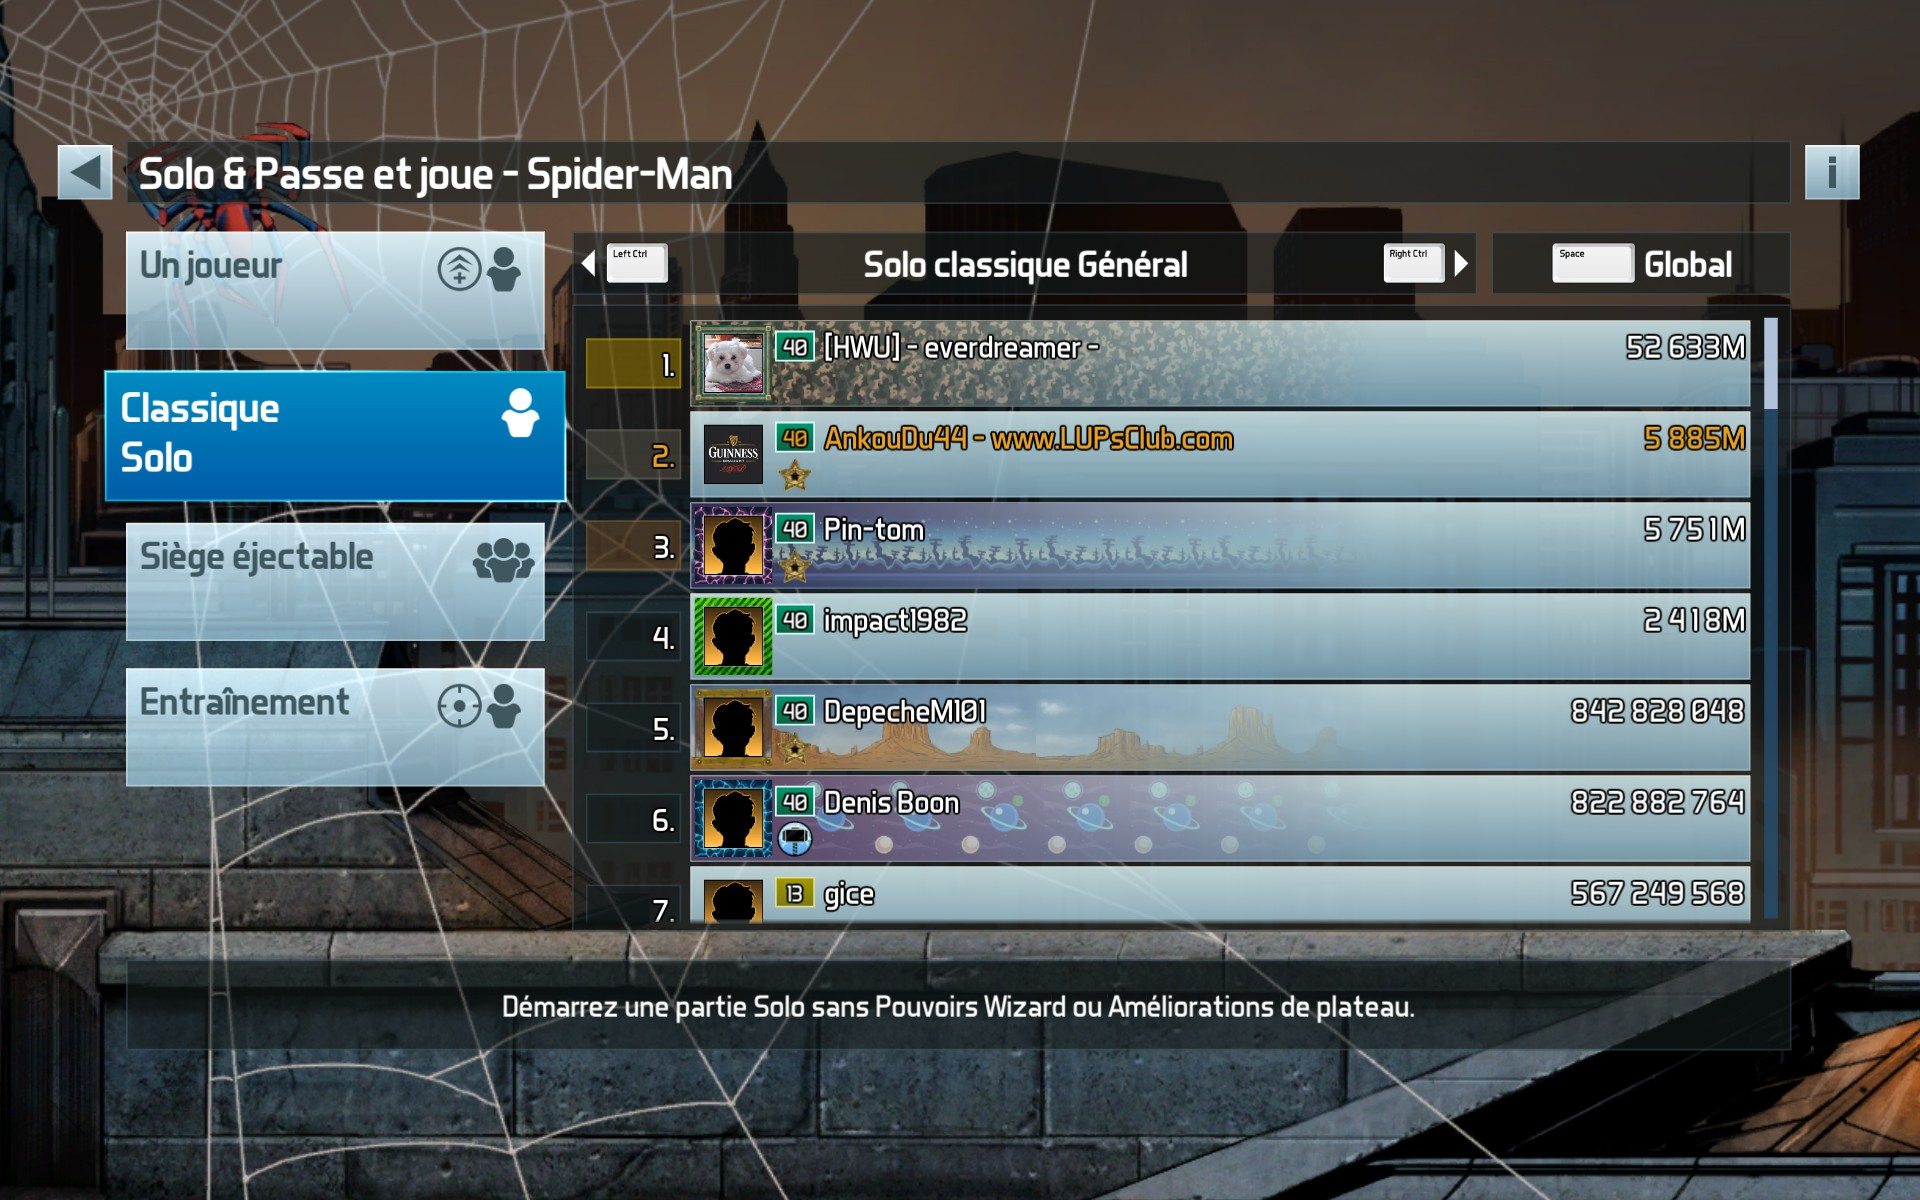 LUP's Club TdM 01.18 : Spécial Leveling • Skyrim, Epic Quest, Spiderman 9F37A0D8C8437BE813C66057911E7F4A503AA6BE